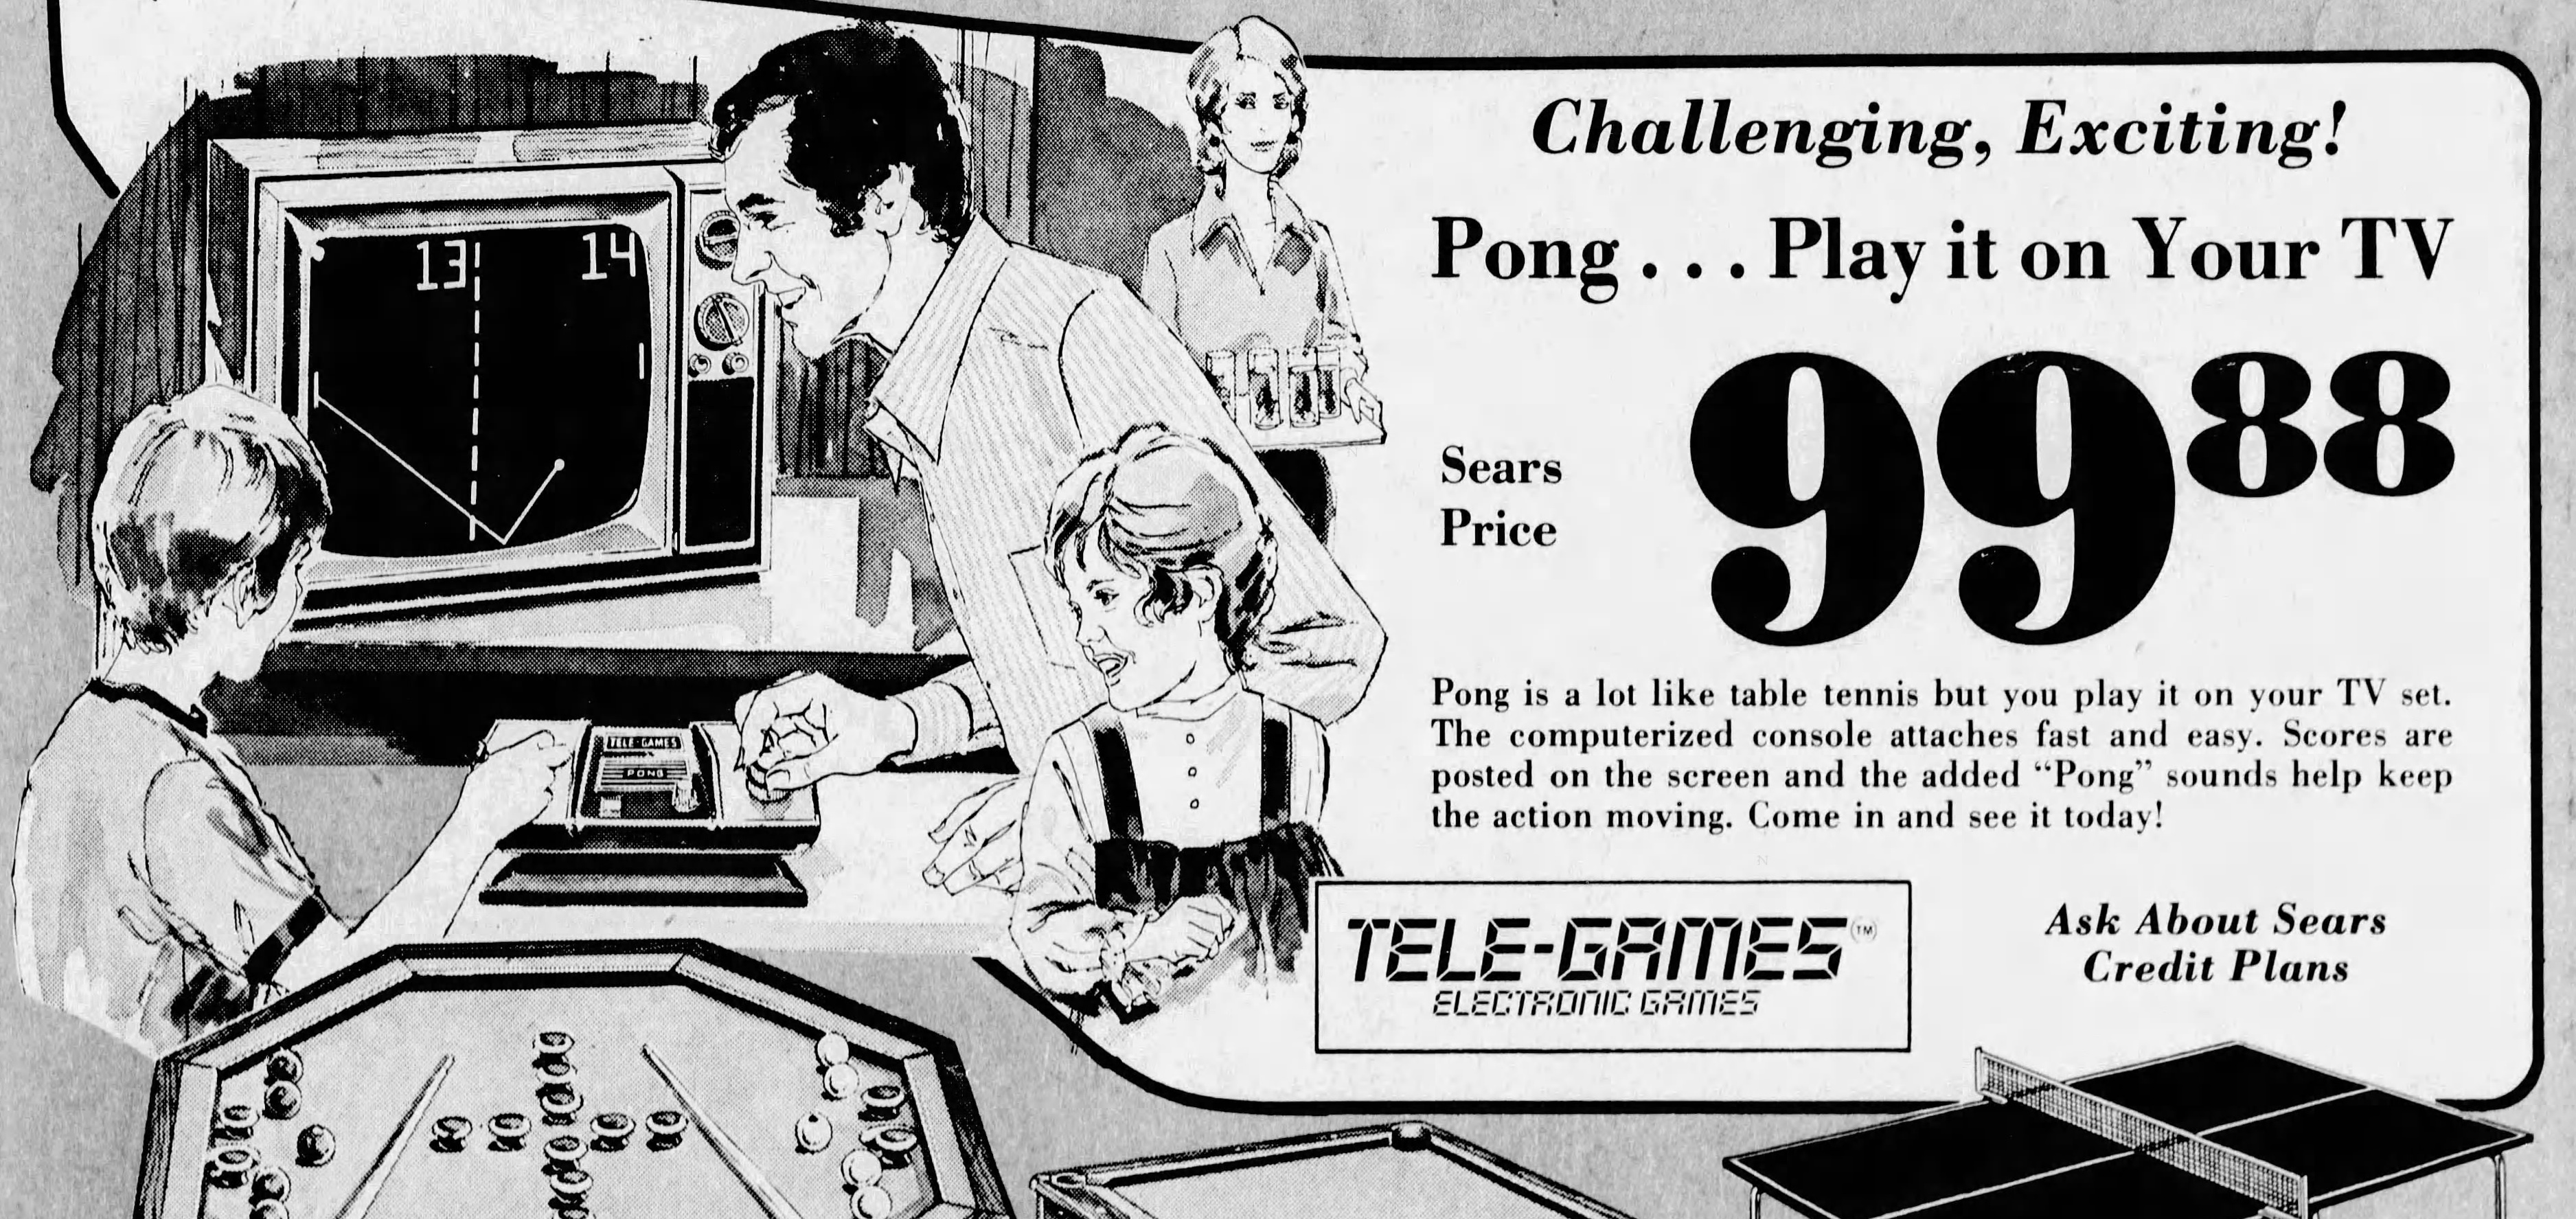 Home video game console Pong, by Atari